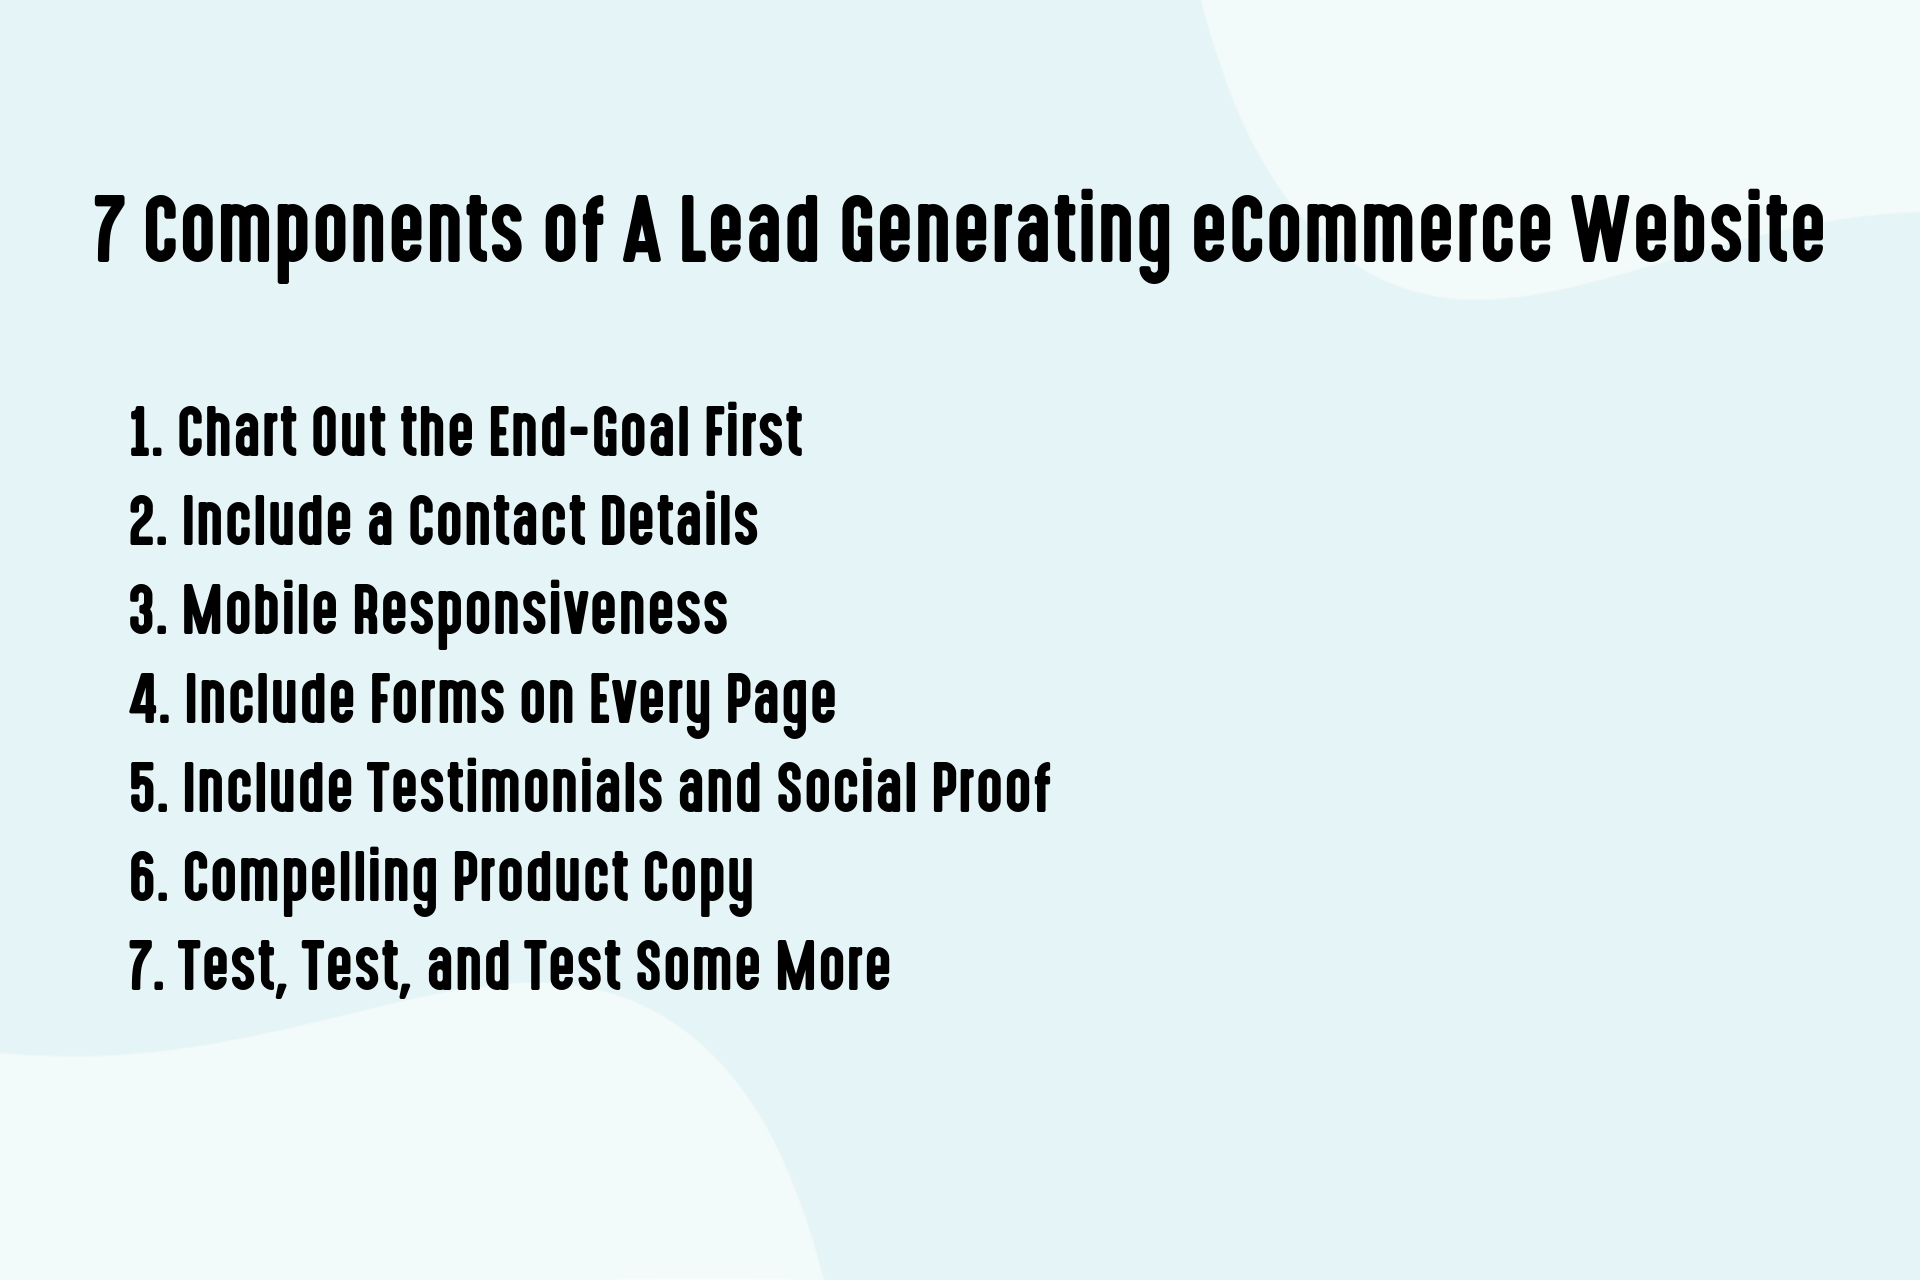 7 Components of A Lead Generating eCommerce Website